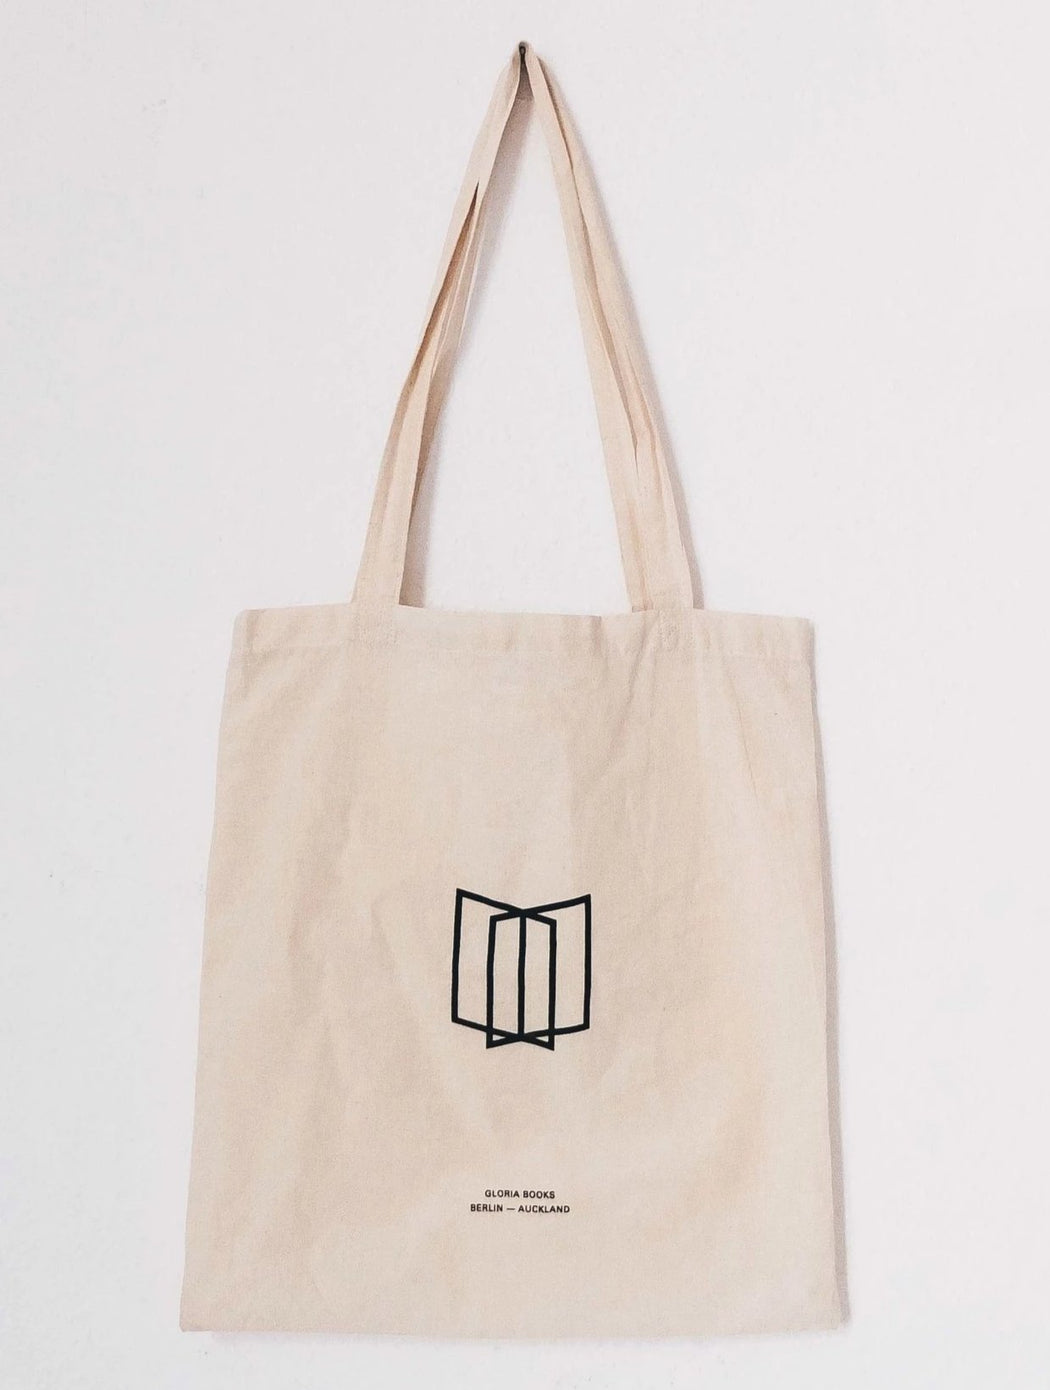 Gloria Books Tote - Strange Goods